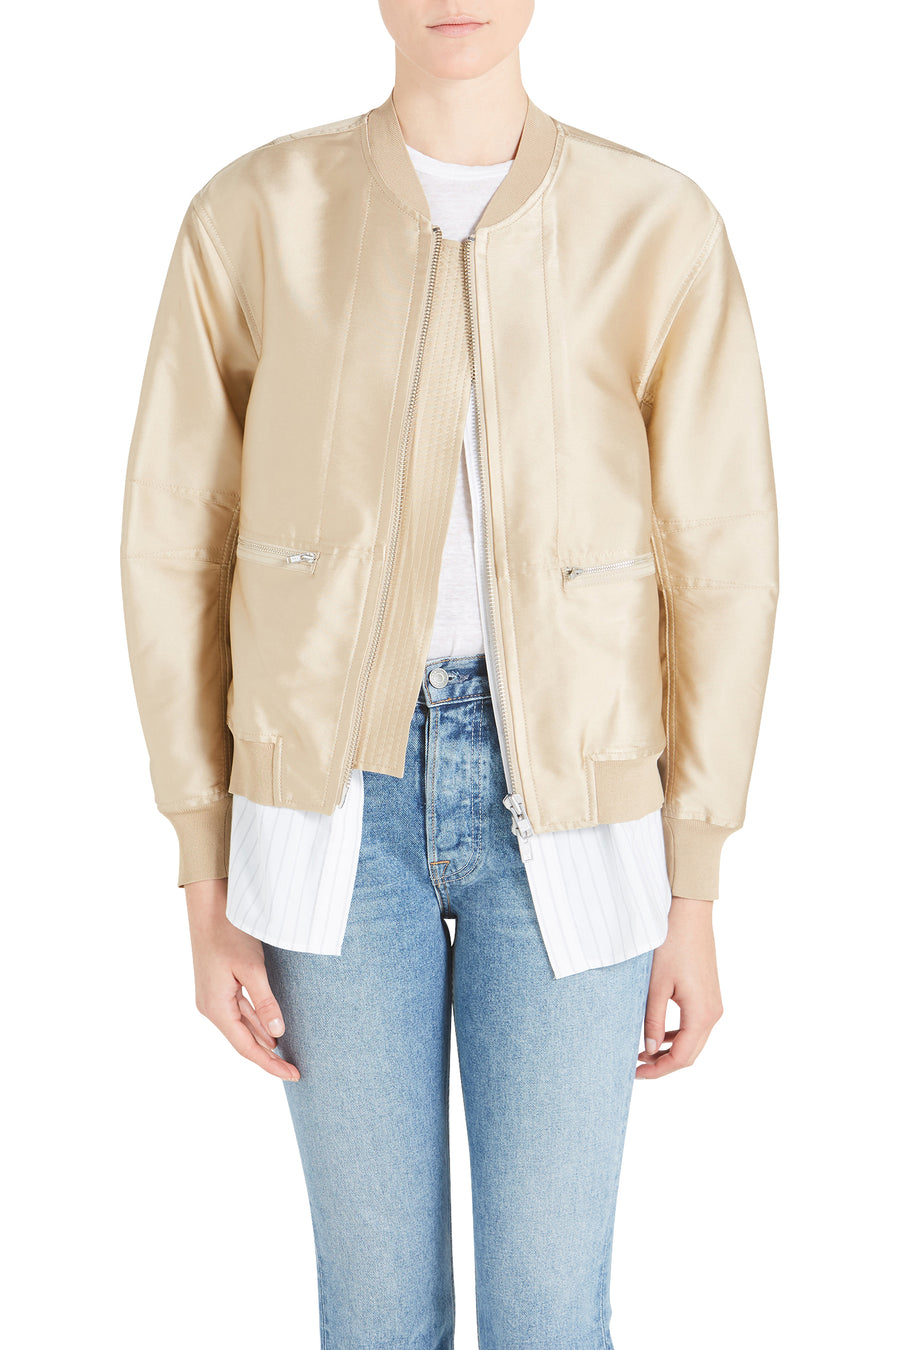 3.1 Phillip Lim Bomber Jacket With Underlay from The New Trend